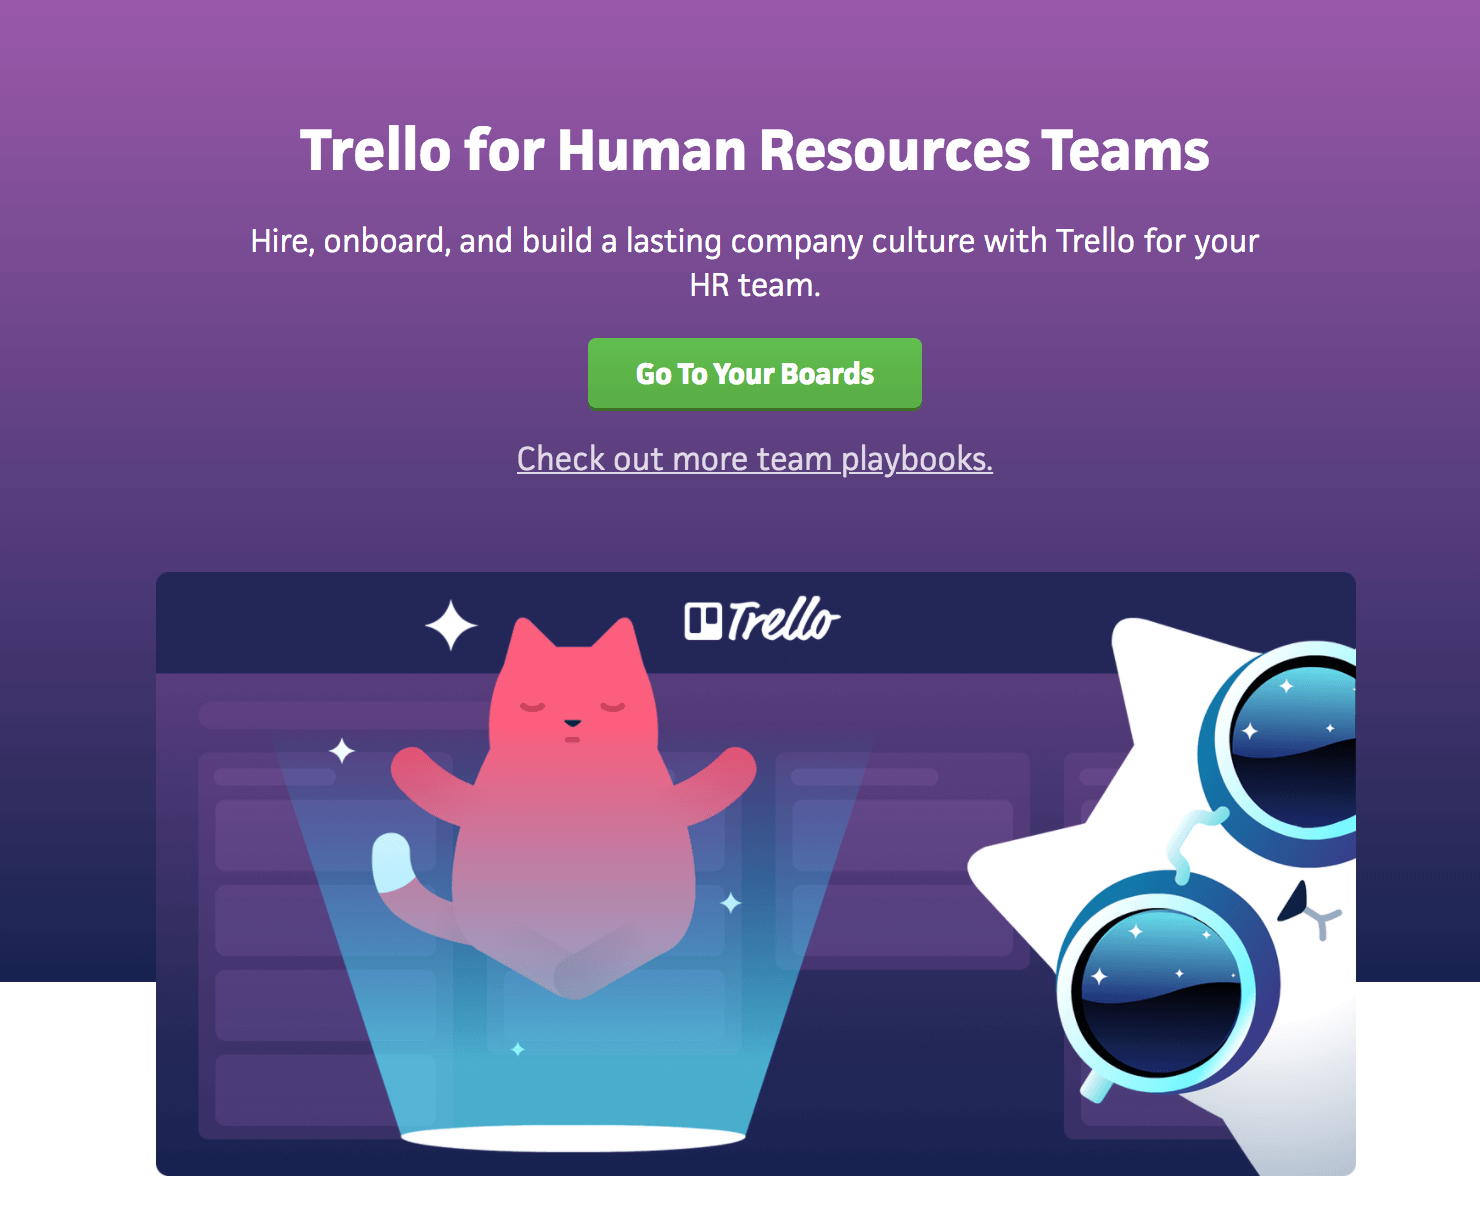 Trello for HR teams